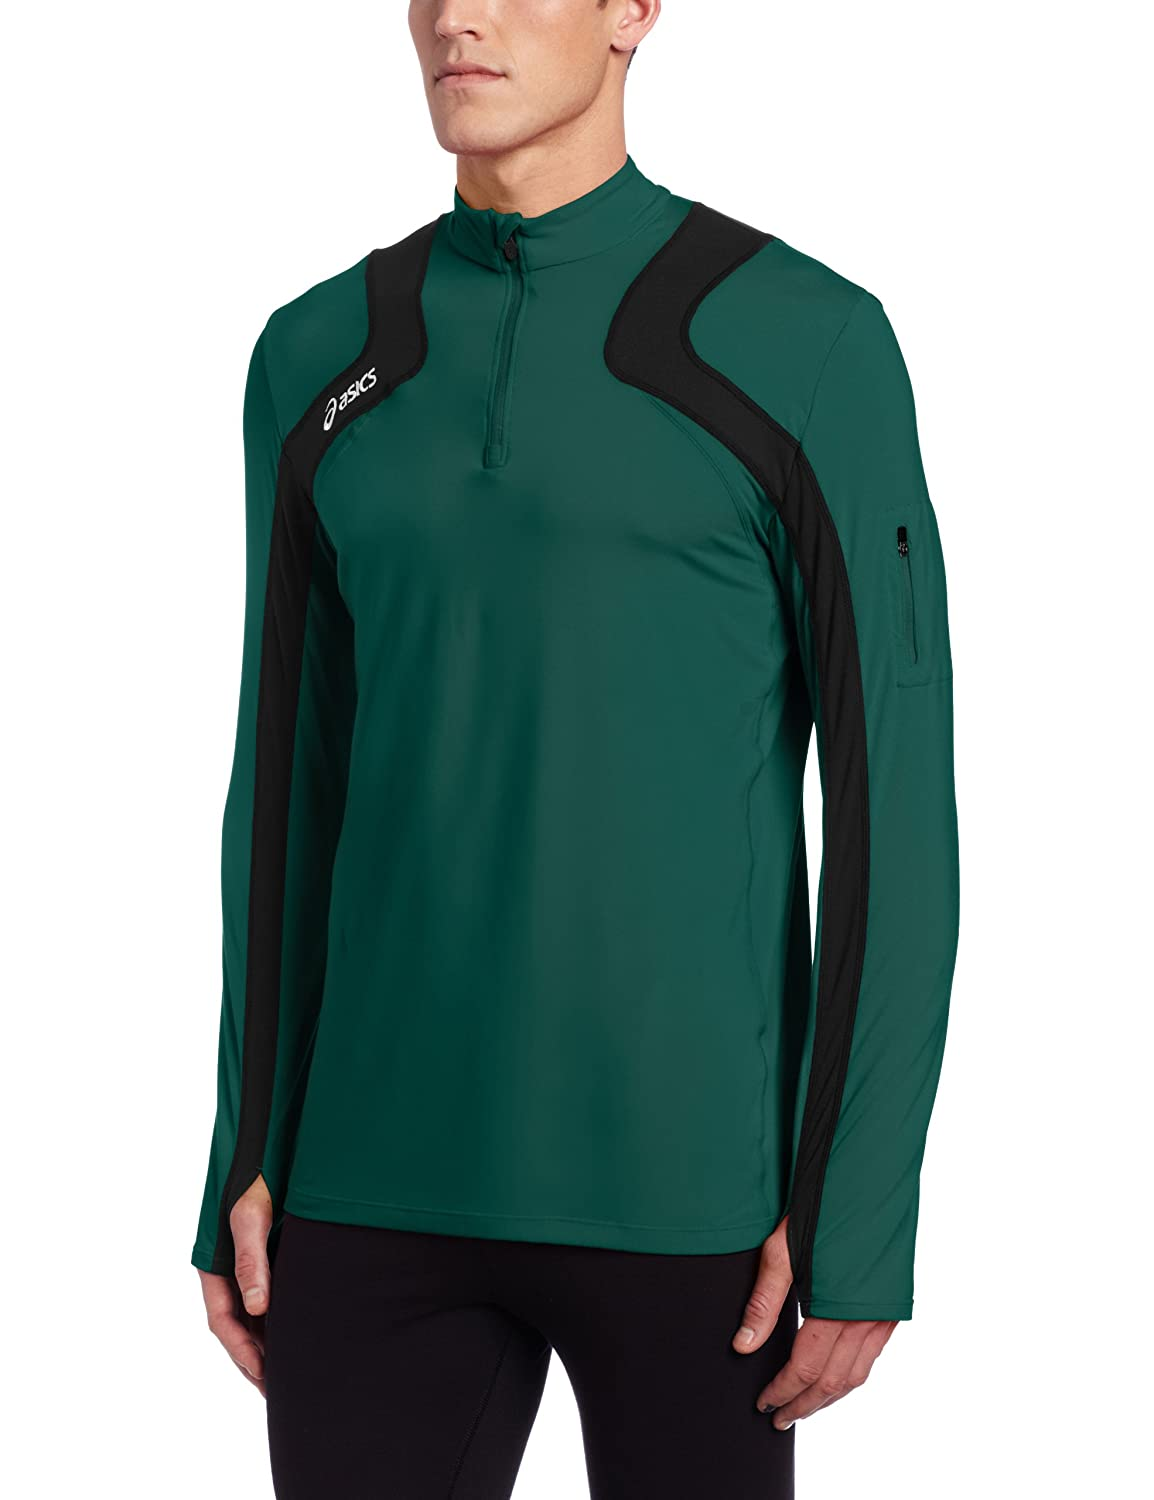 Asics Herren Team Tech Half Zip, Herren, Forest/Black, X-Large